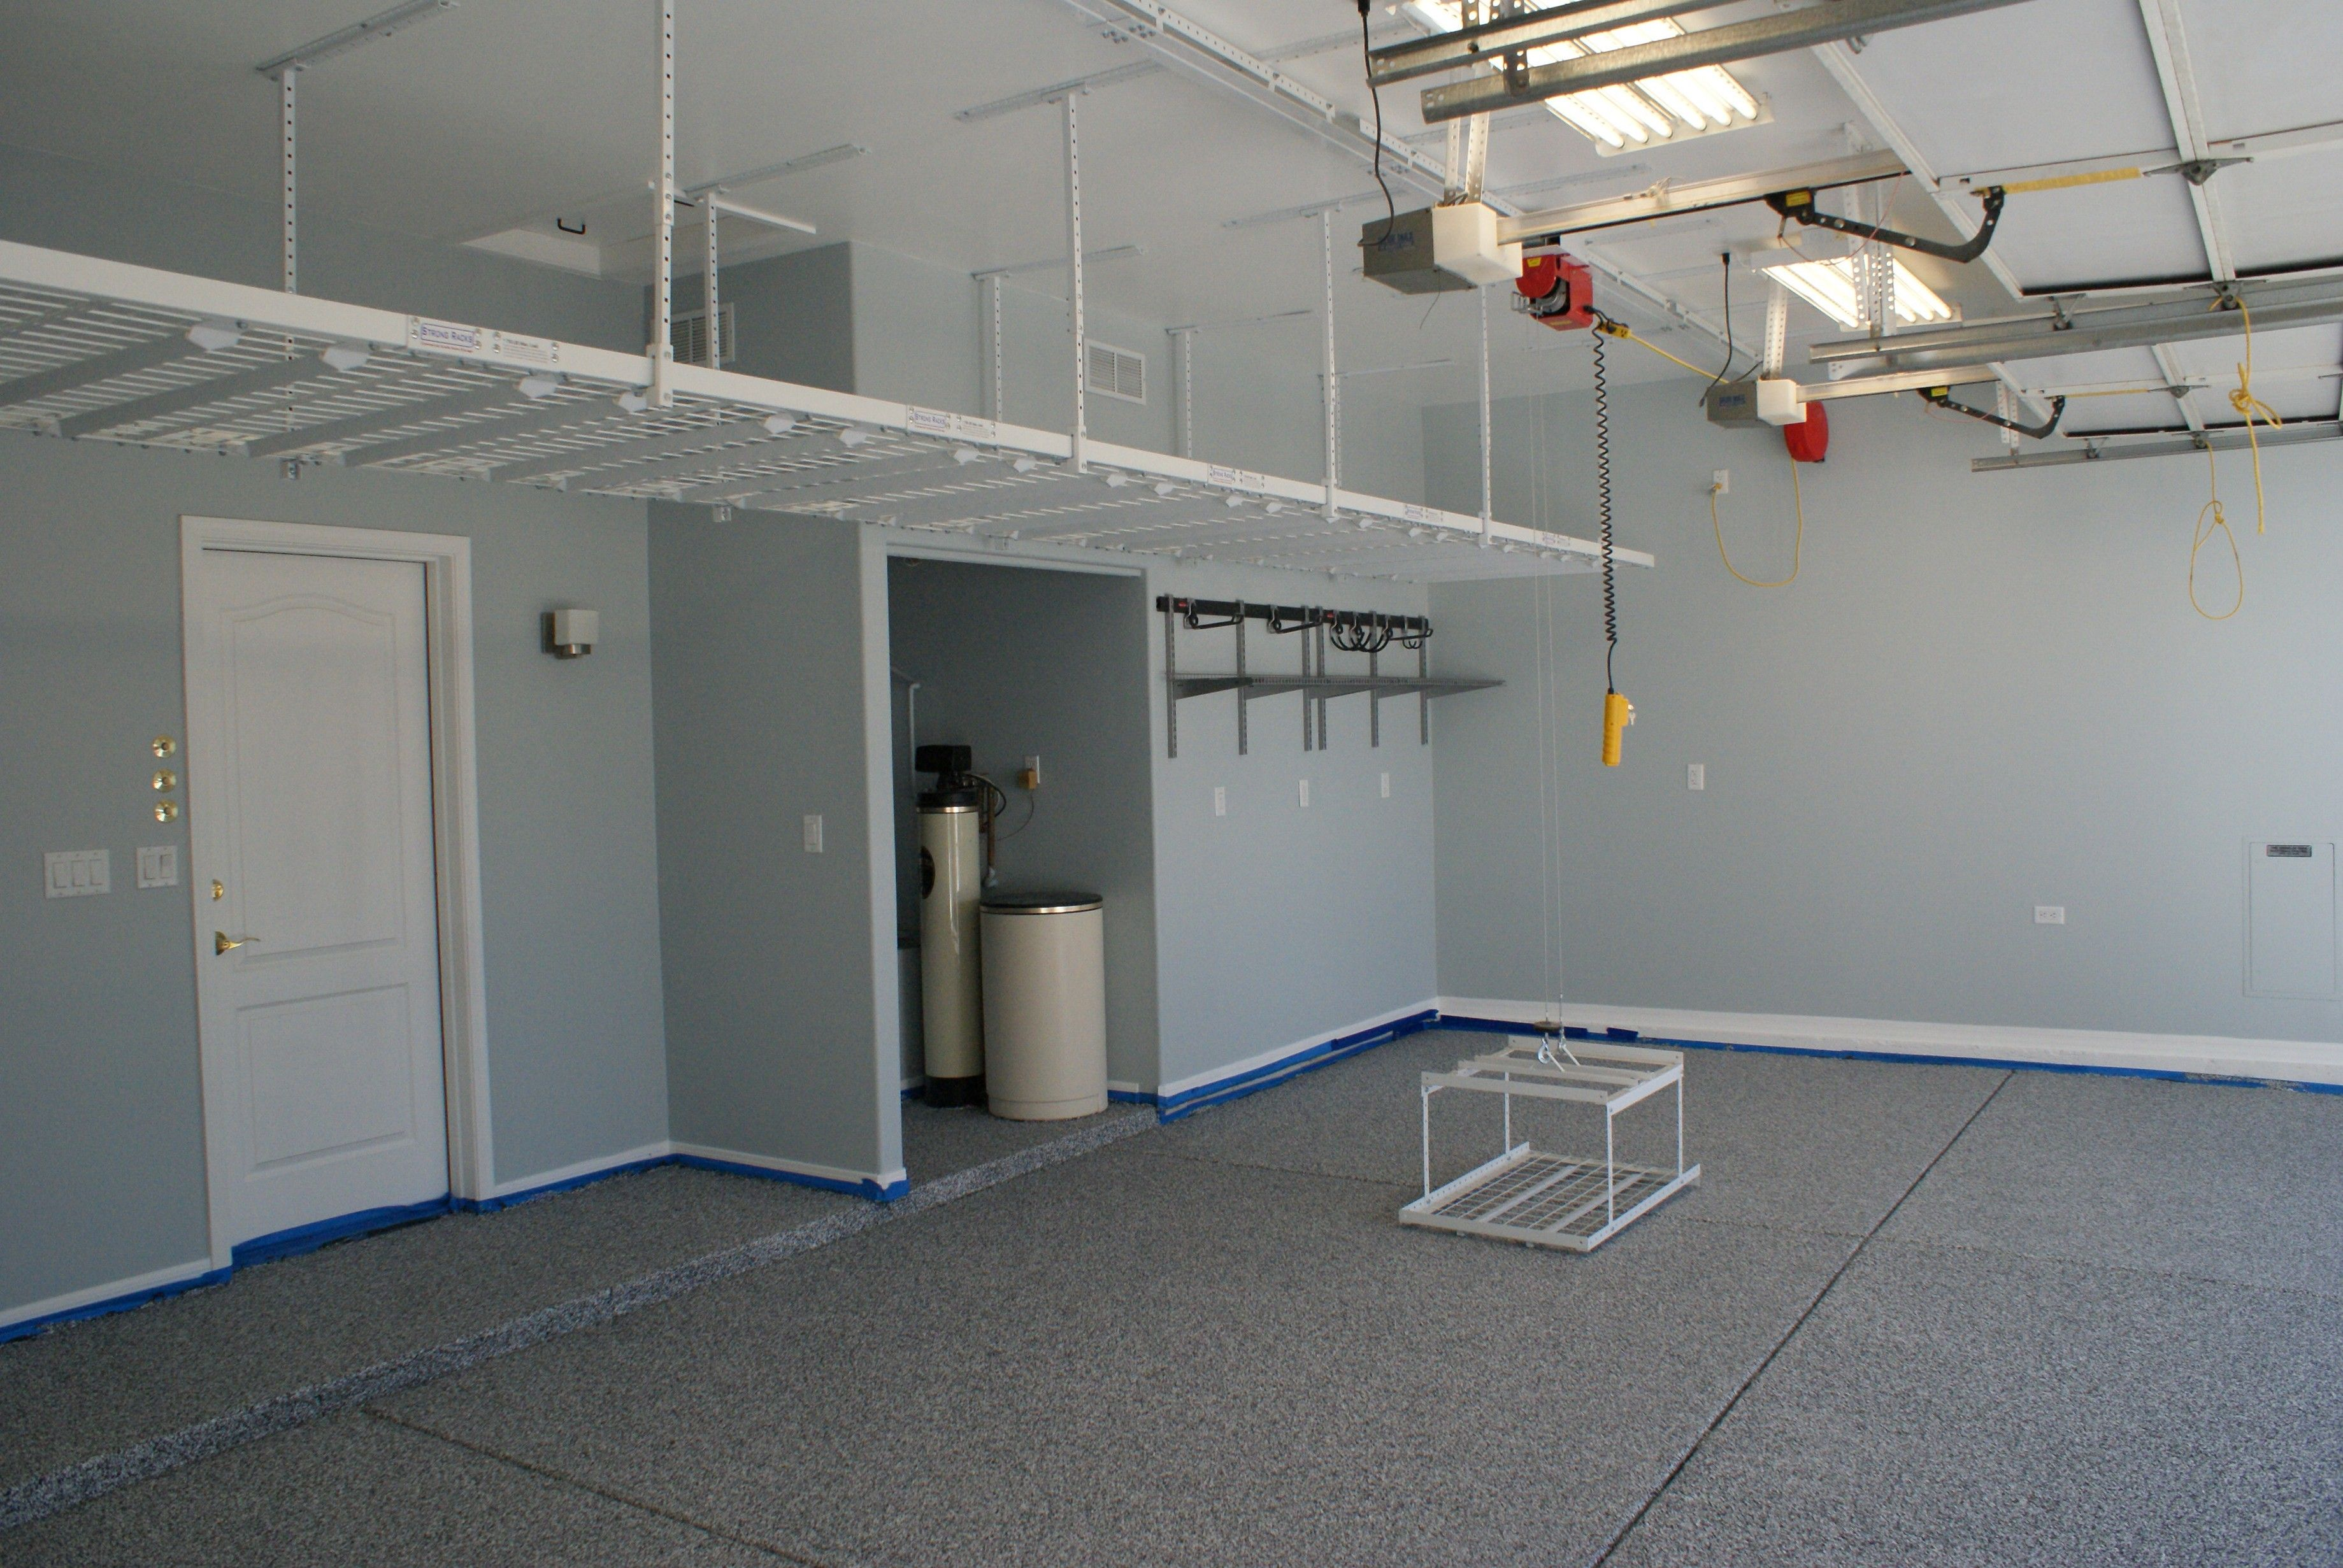 ceilings solutions garage storage pin ceiling pinterest systems